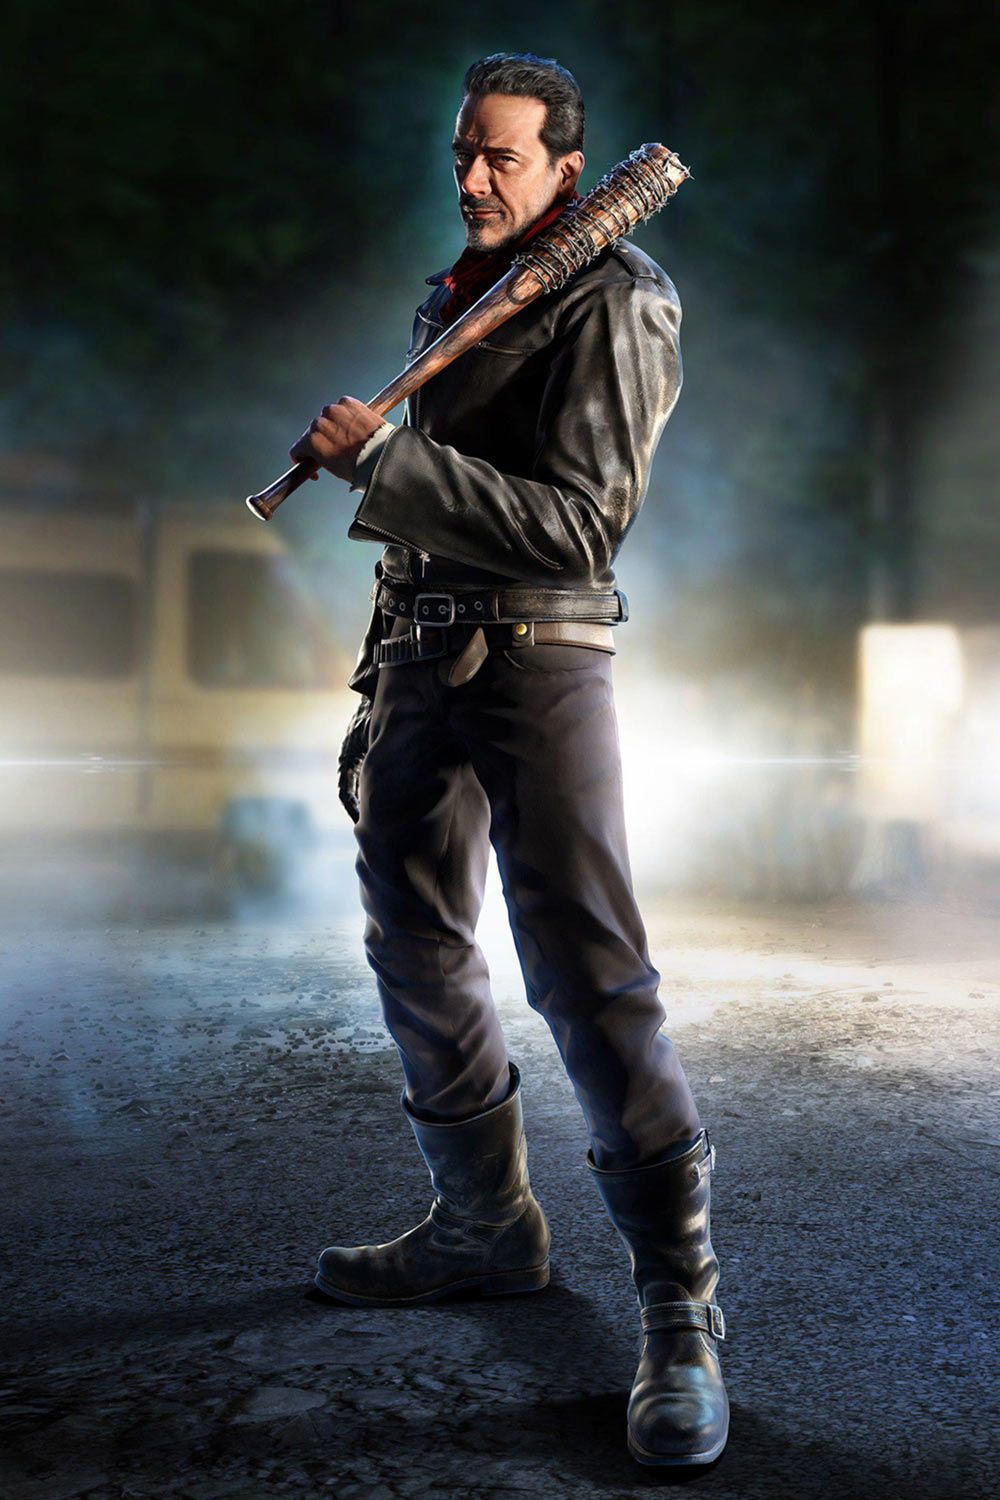 Negan Character Artwork From Tekken 7 Fated Retribution Art Illustration Artwork Gaming Videogames Gamer Negan The Walking Dead Poster Walking Dead Game